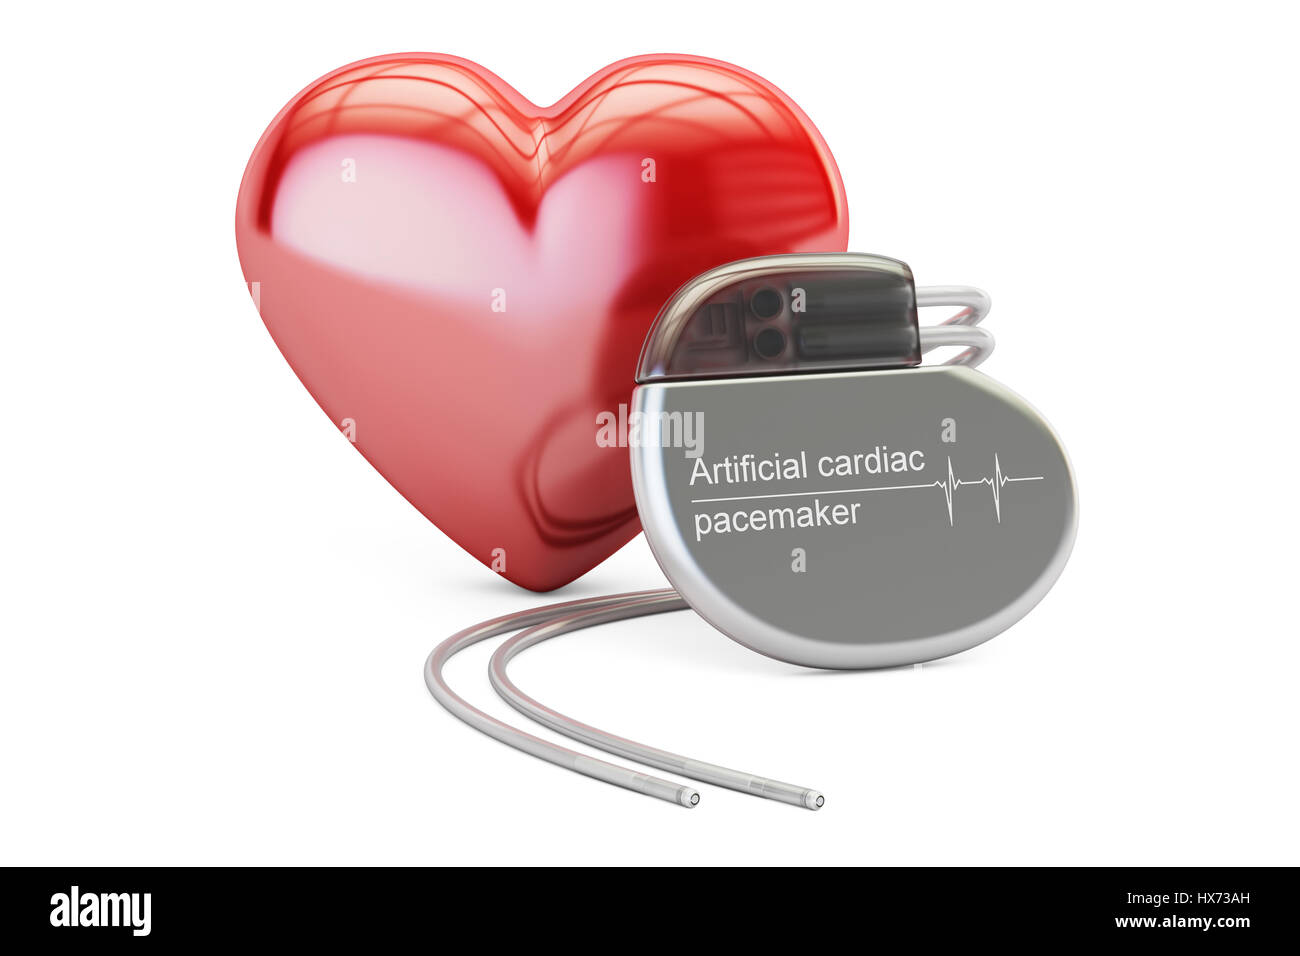 Artificial cardiac pacemaker with red heart, 3D rendering isolated on white background Stock Photo